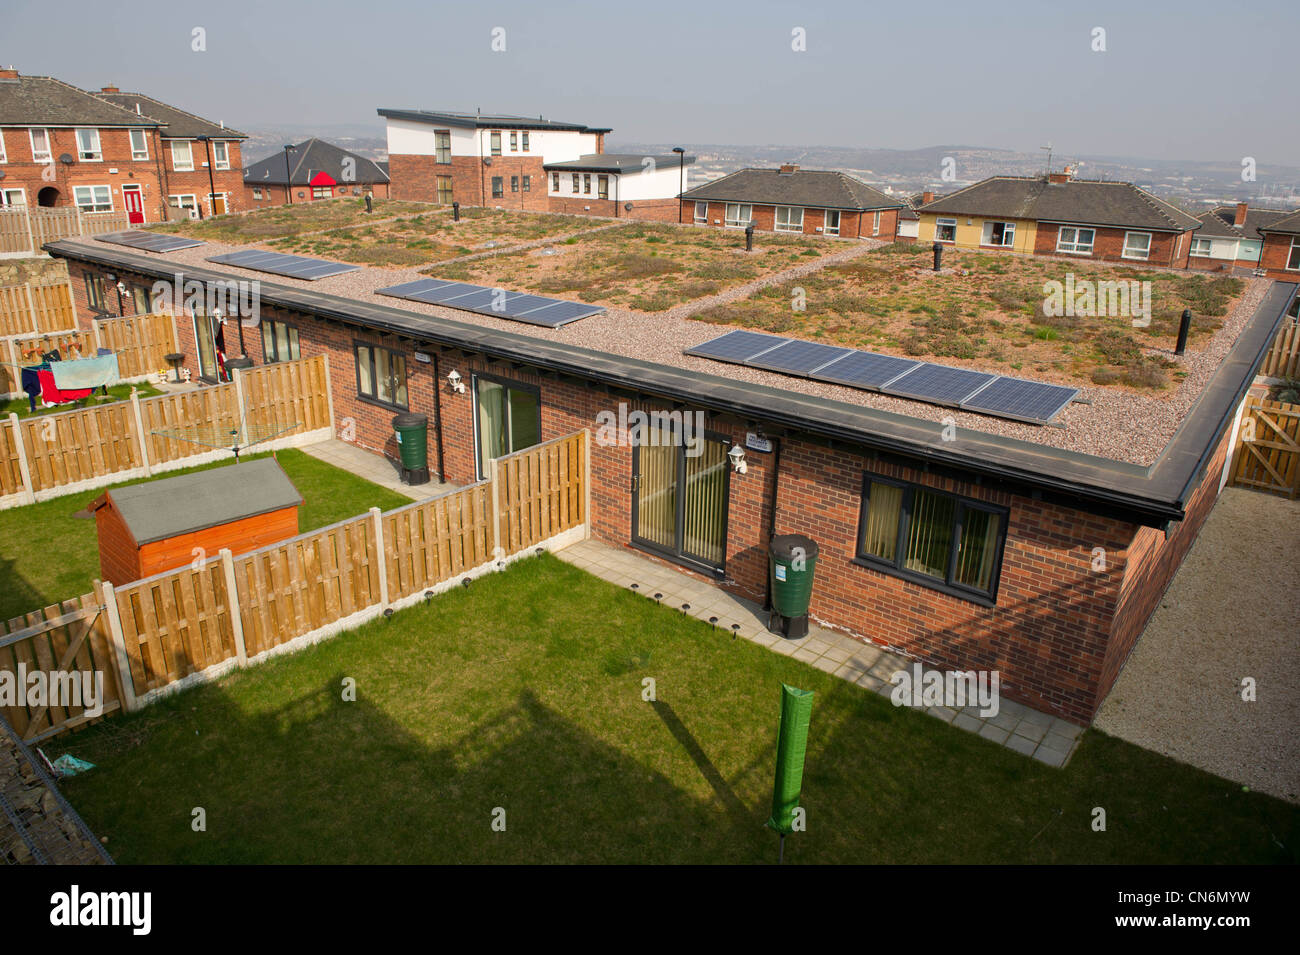 New Build Social Housing With Solar Panels And A Green Roof